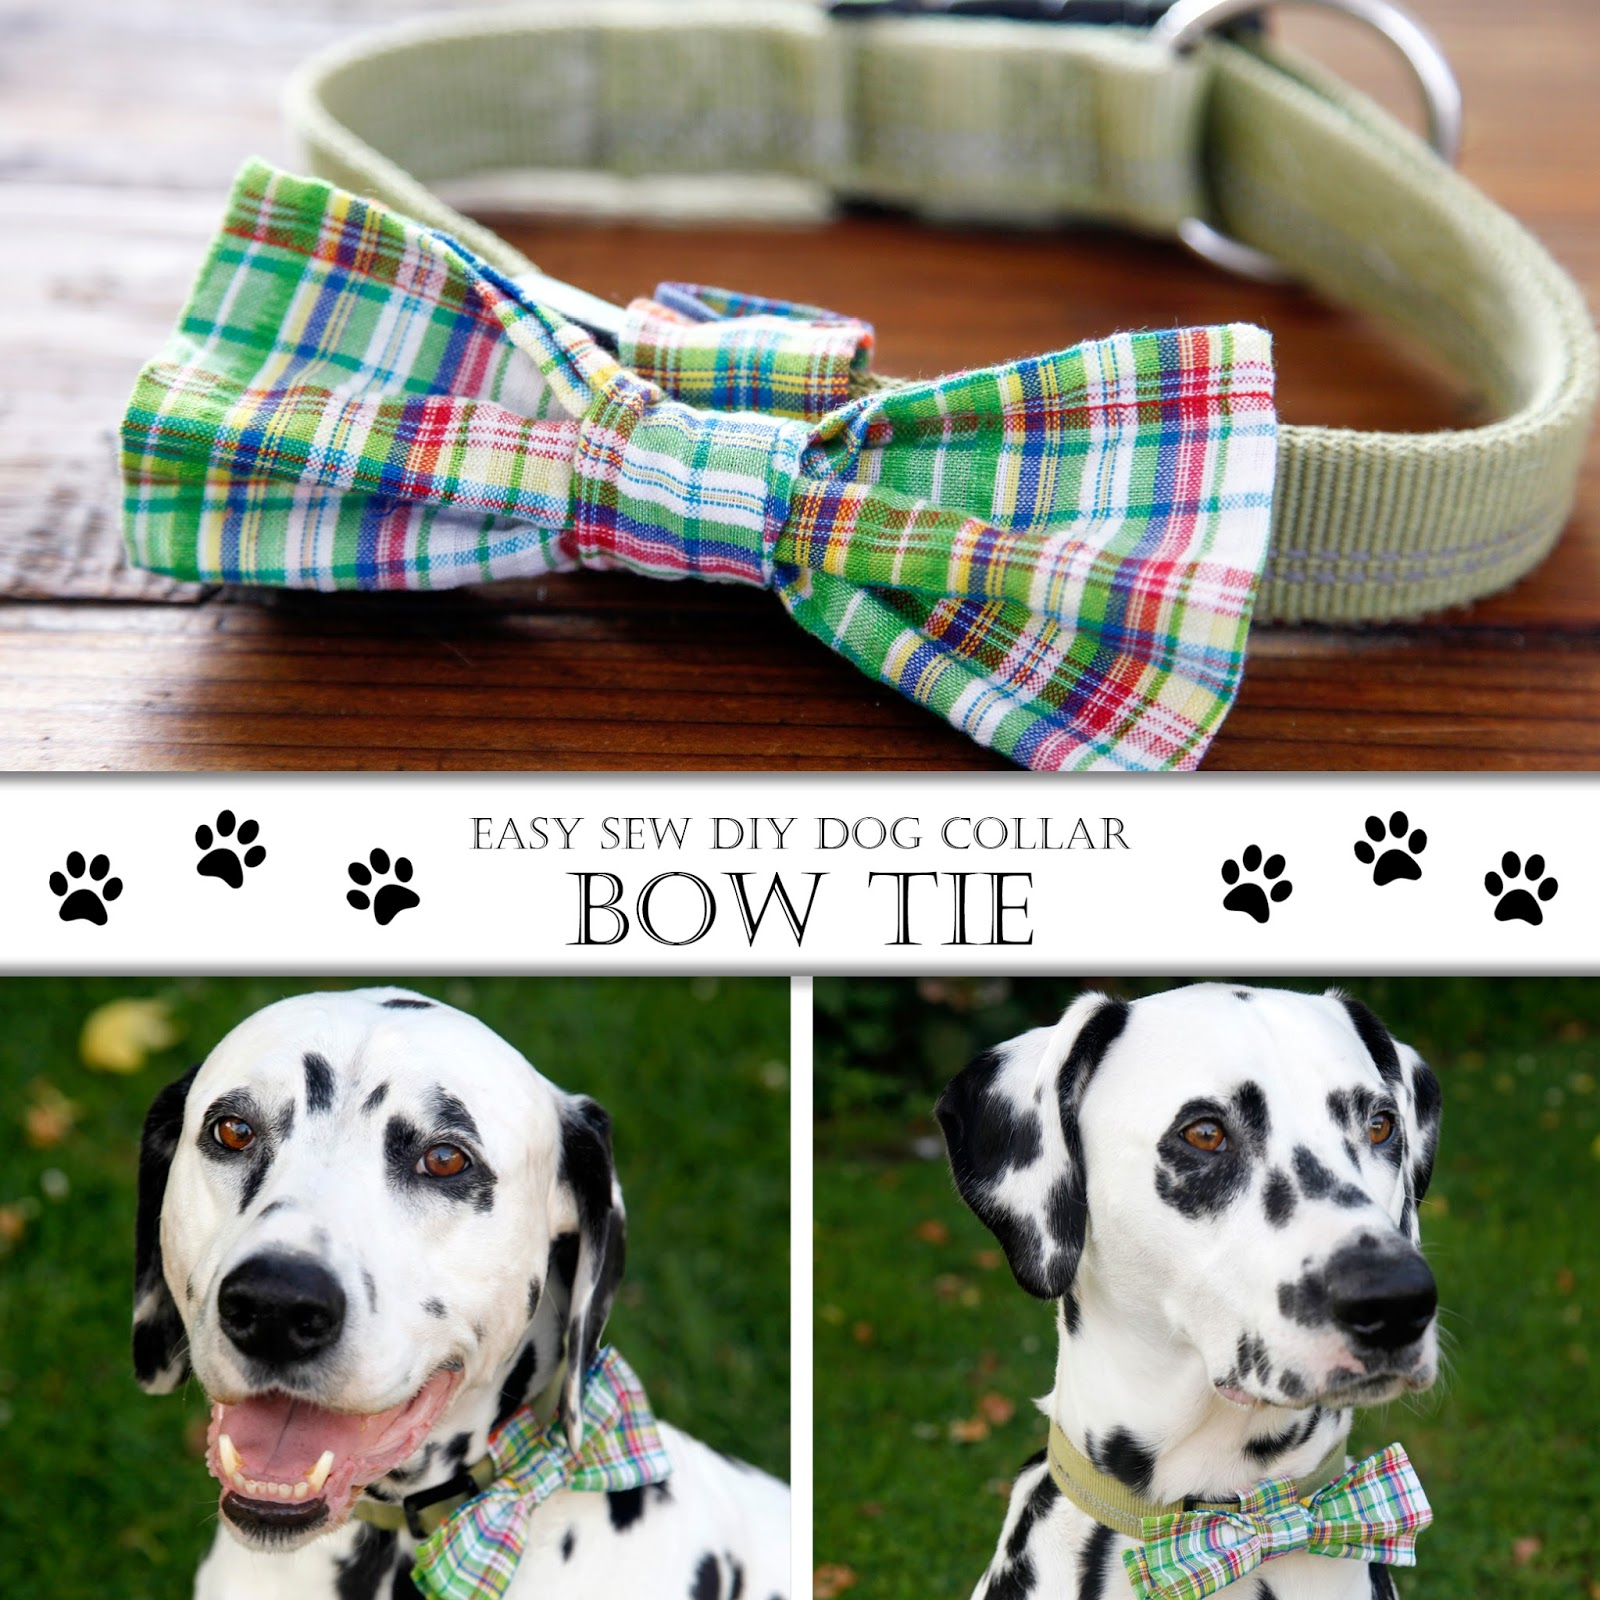 How To Make Bow Tie Collar For Dog